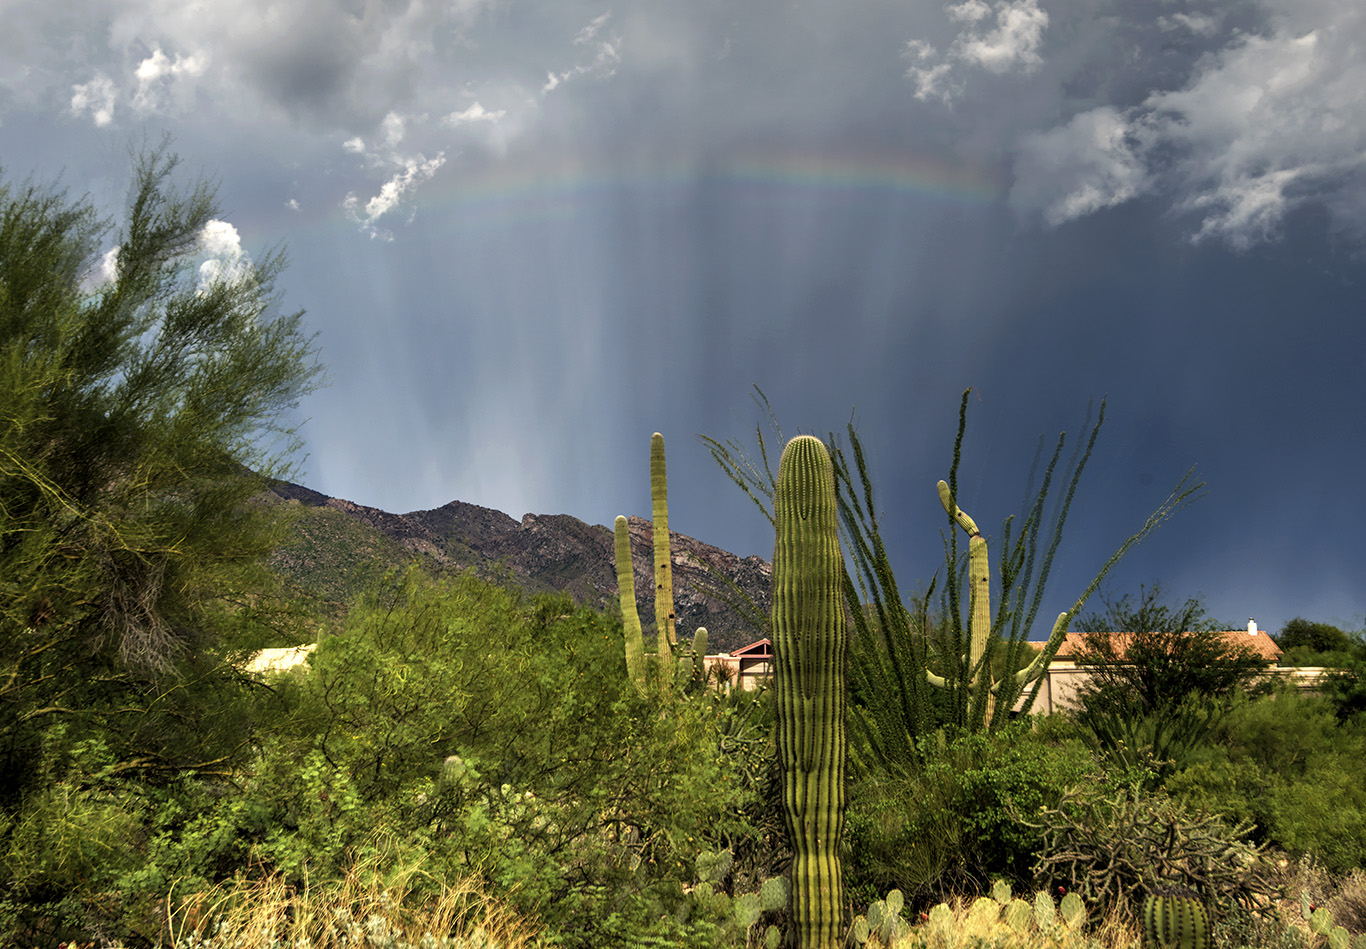 Eliot-Herman-Rainbow-and-anticrepuscular-ray-during-monsoon-sw_1440341269